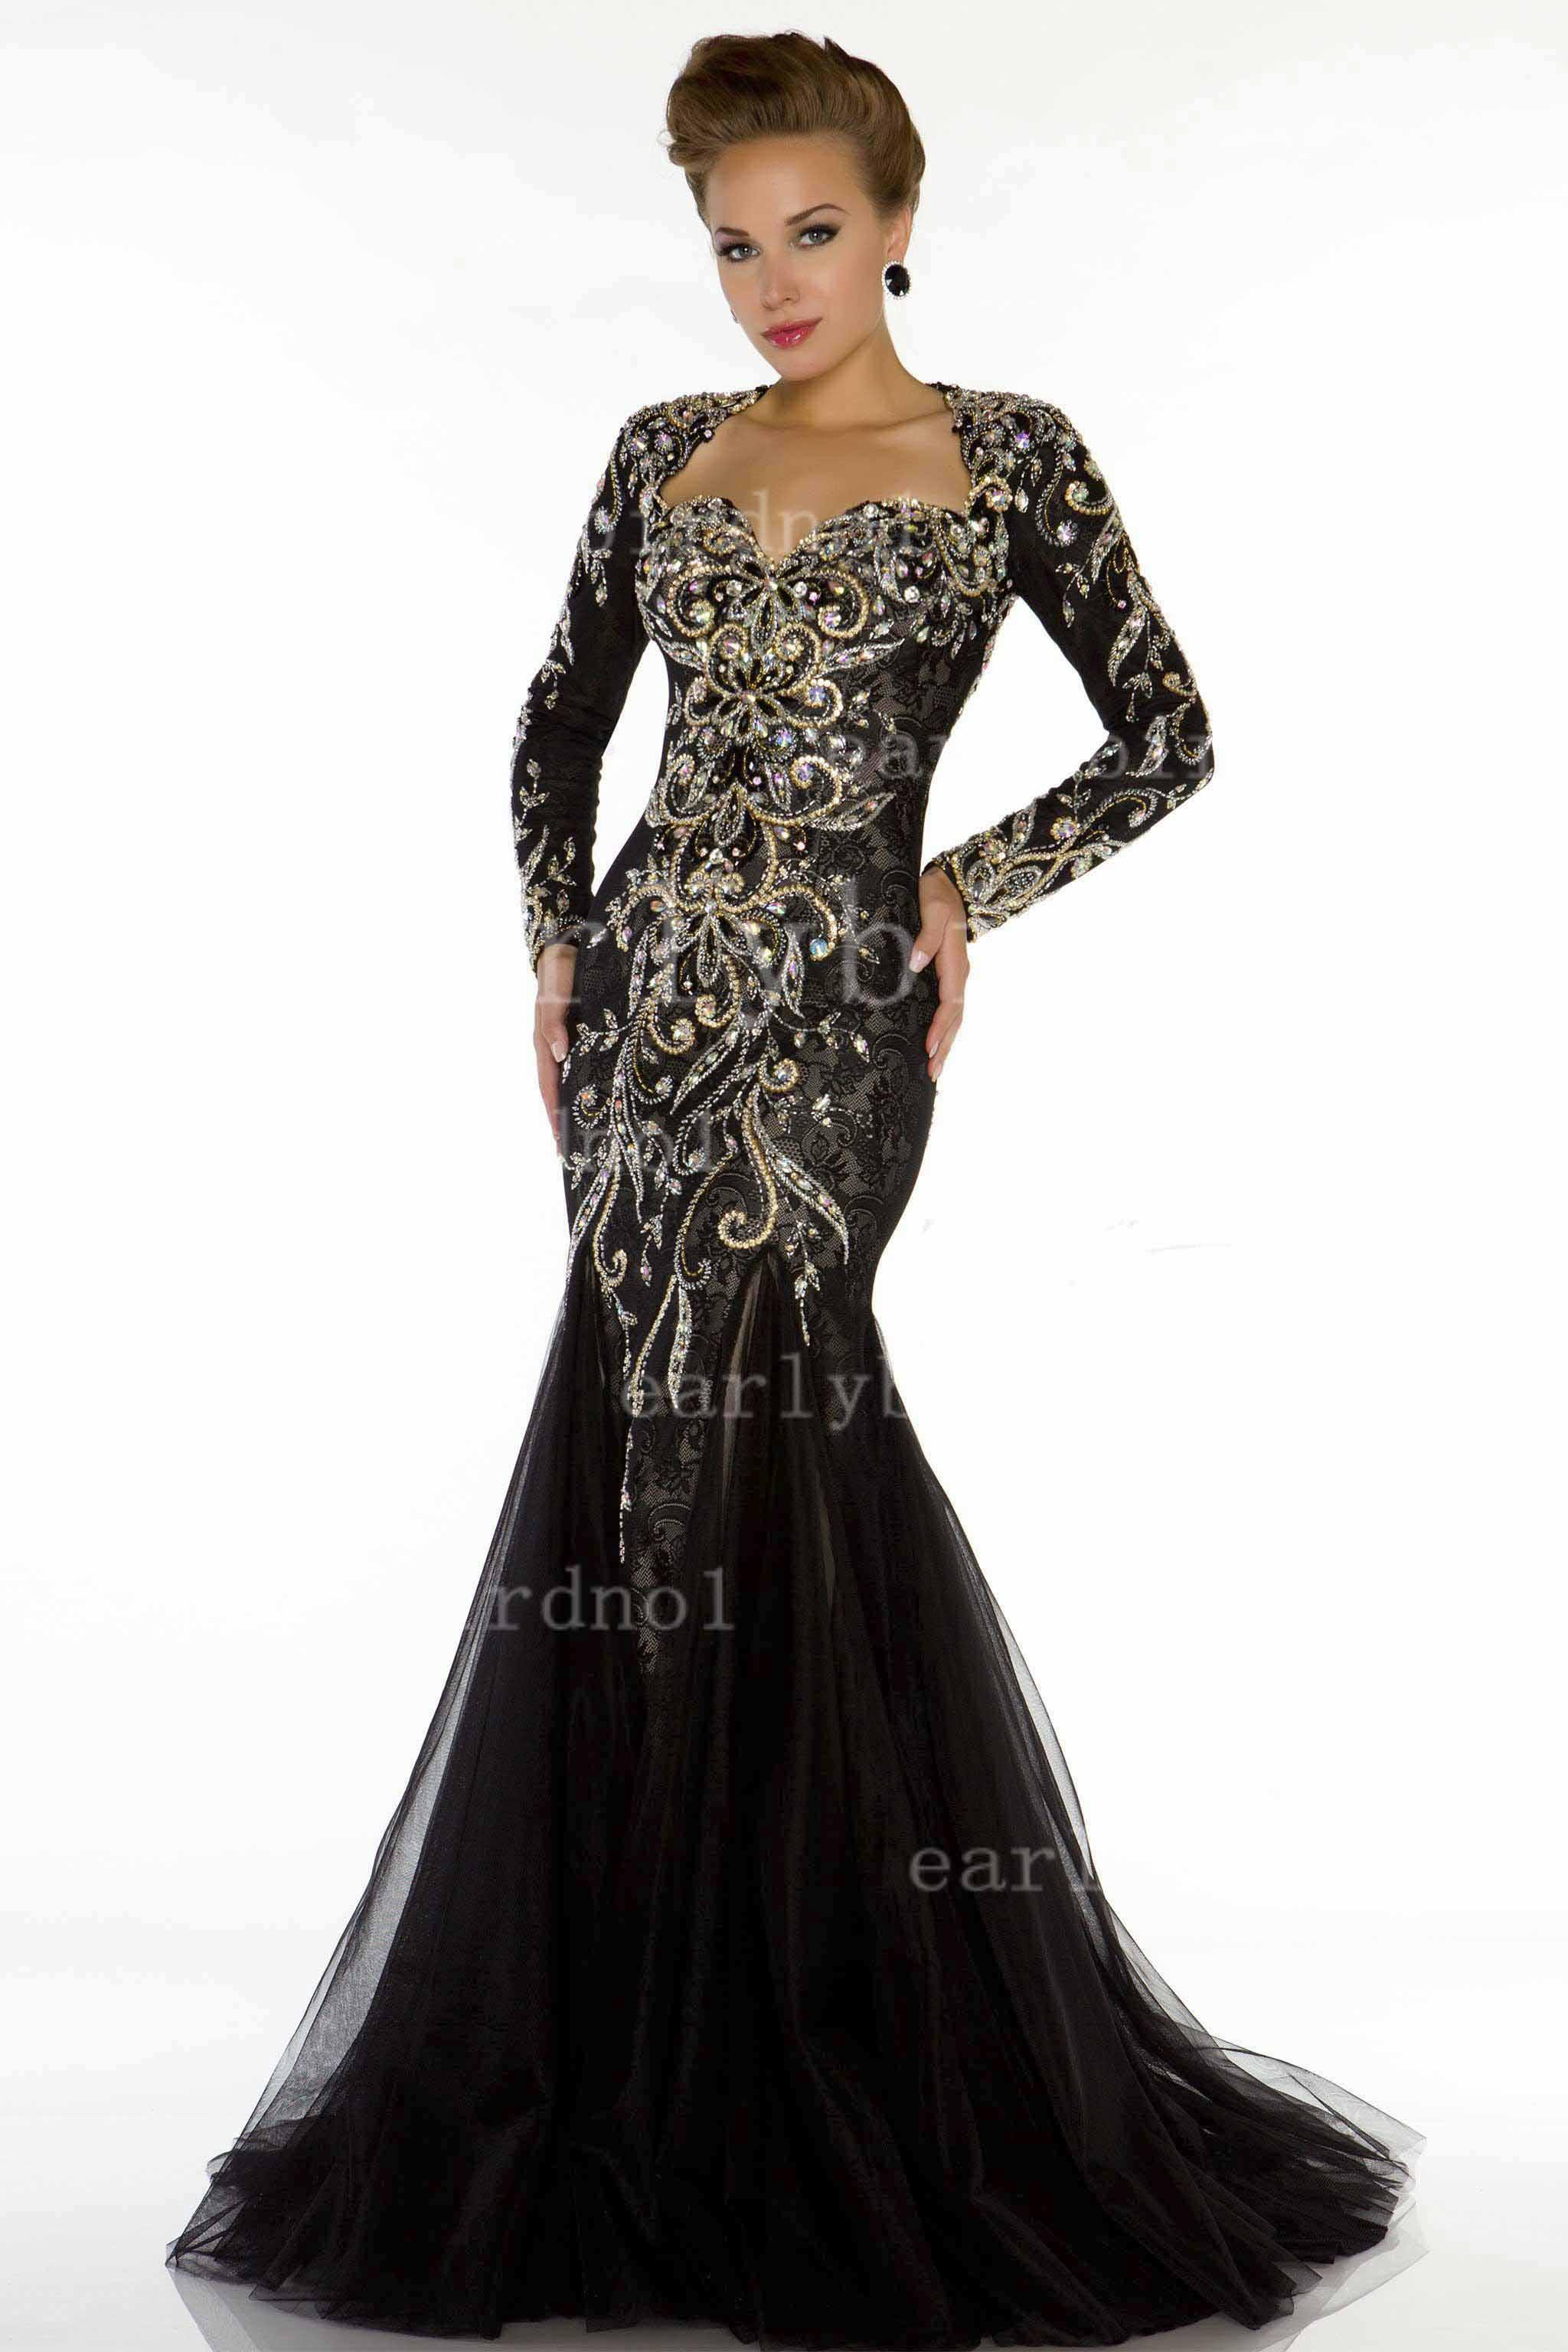 2014-earlybirdno1-formal-evening-dresses.jpg